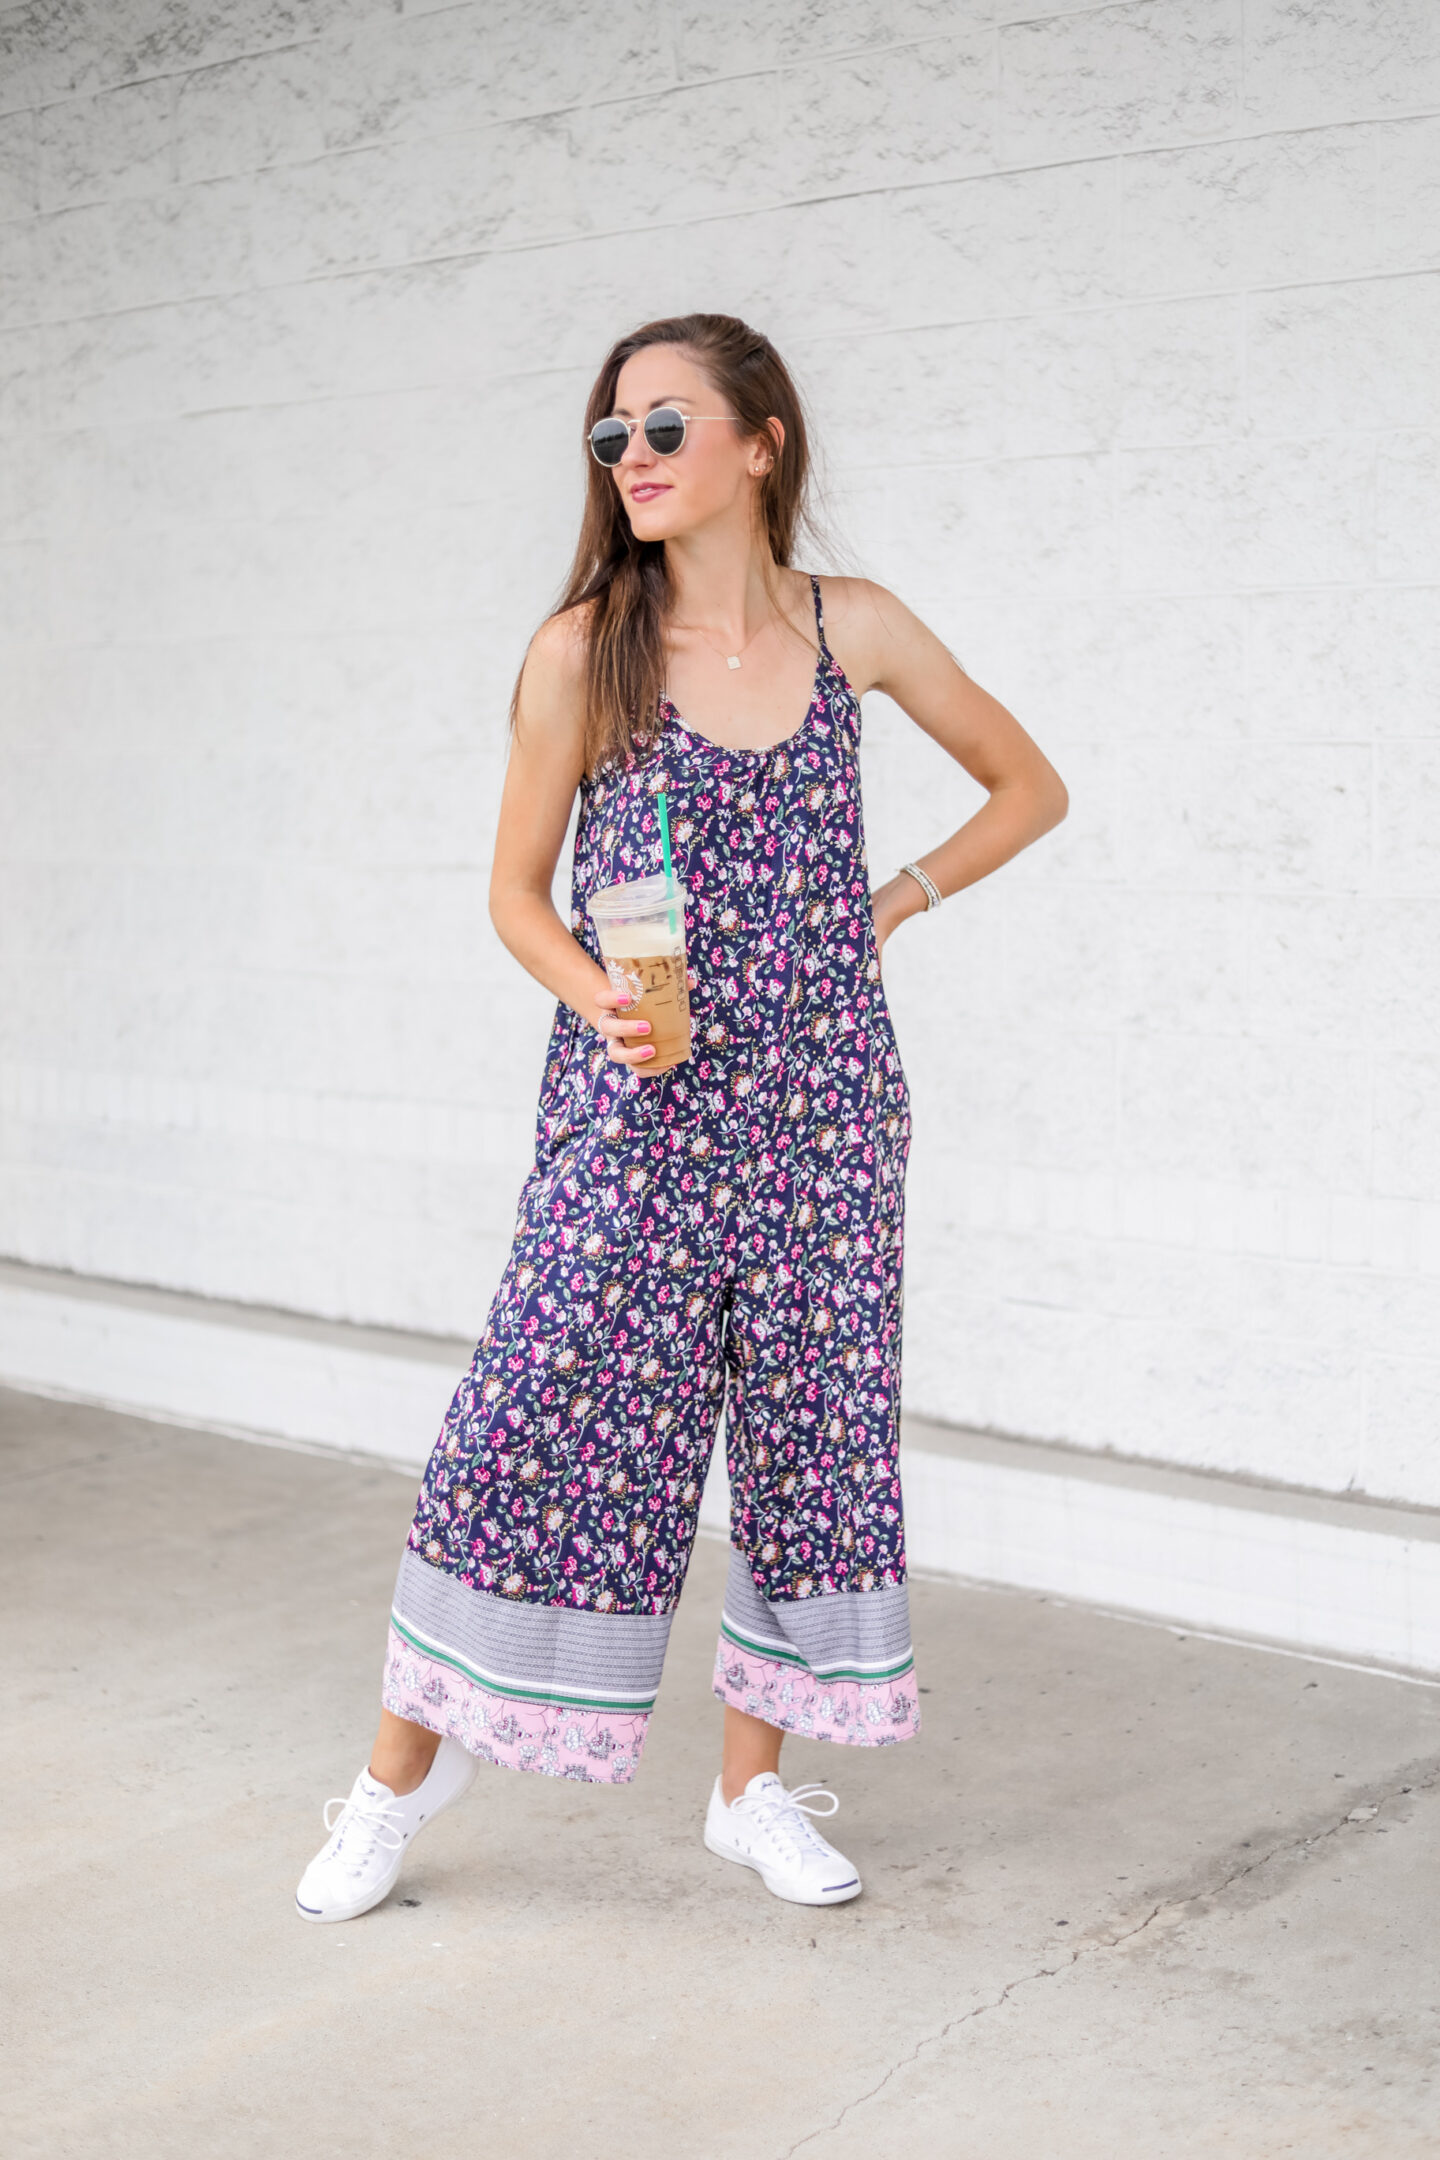 $17 AMAZON JUMPSUIT - Pretty floral prints and easy, breezy fit for everyday wear!